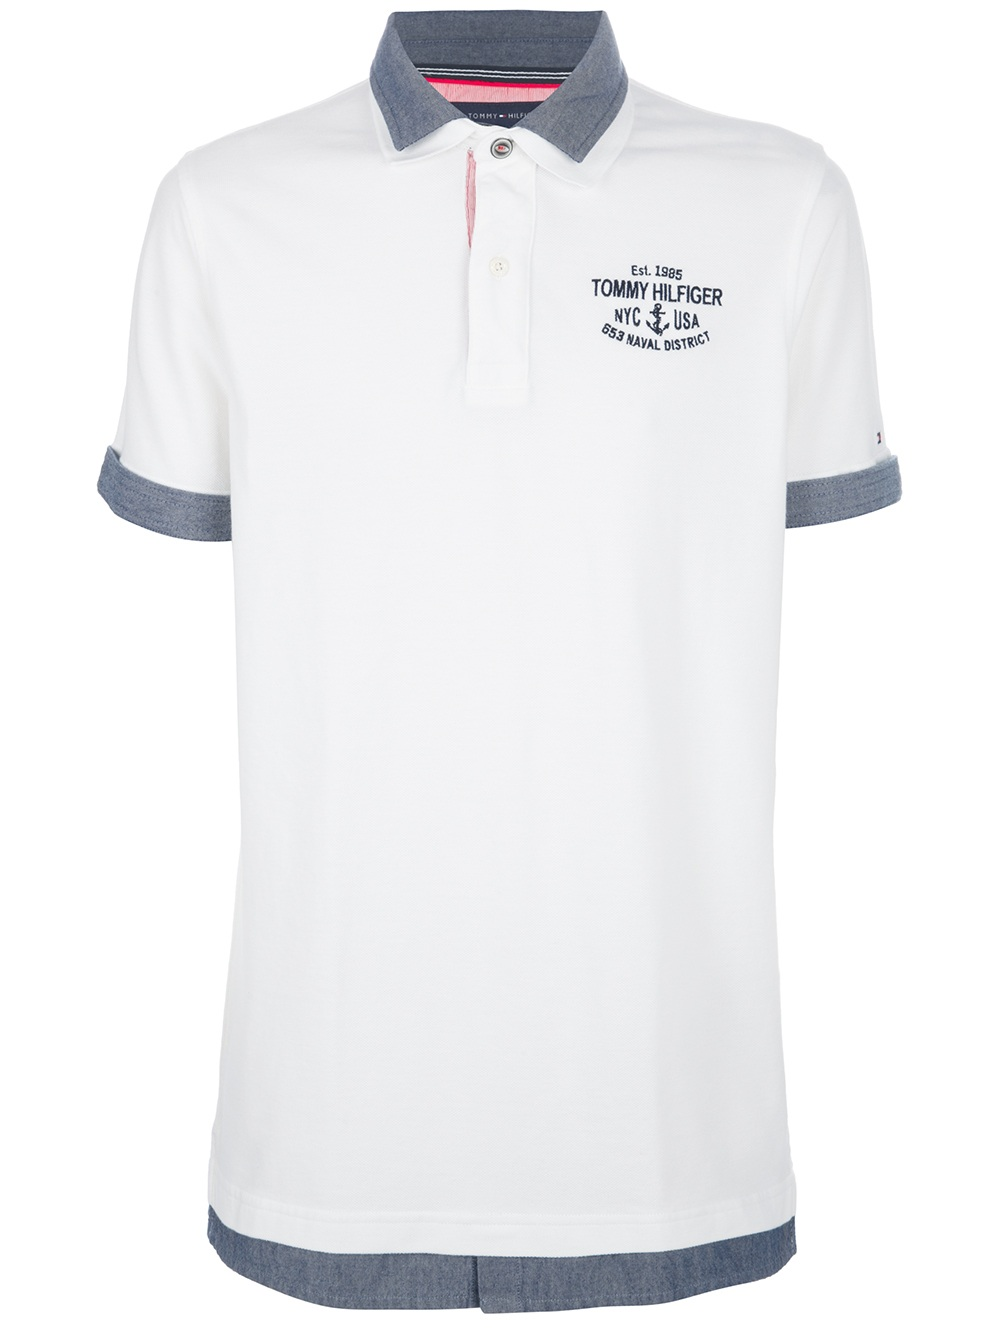 lyst tommy hilfiger polo shirt in white for men. Black Bedroom Furniture Sets. Home Design Ideas